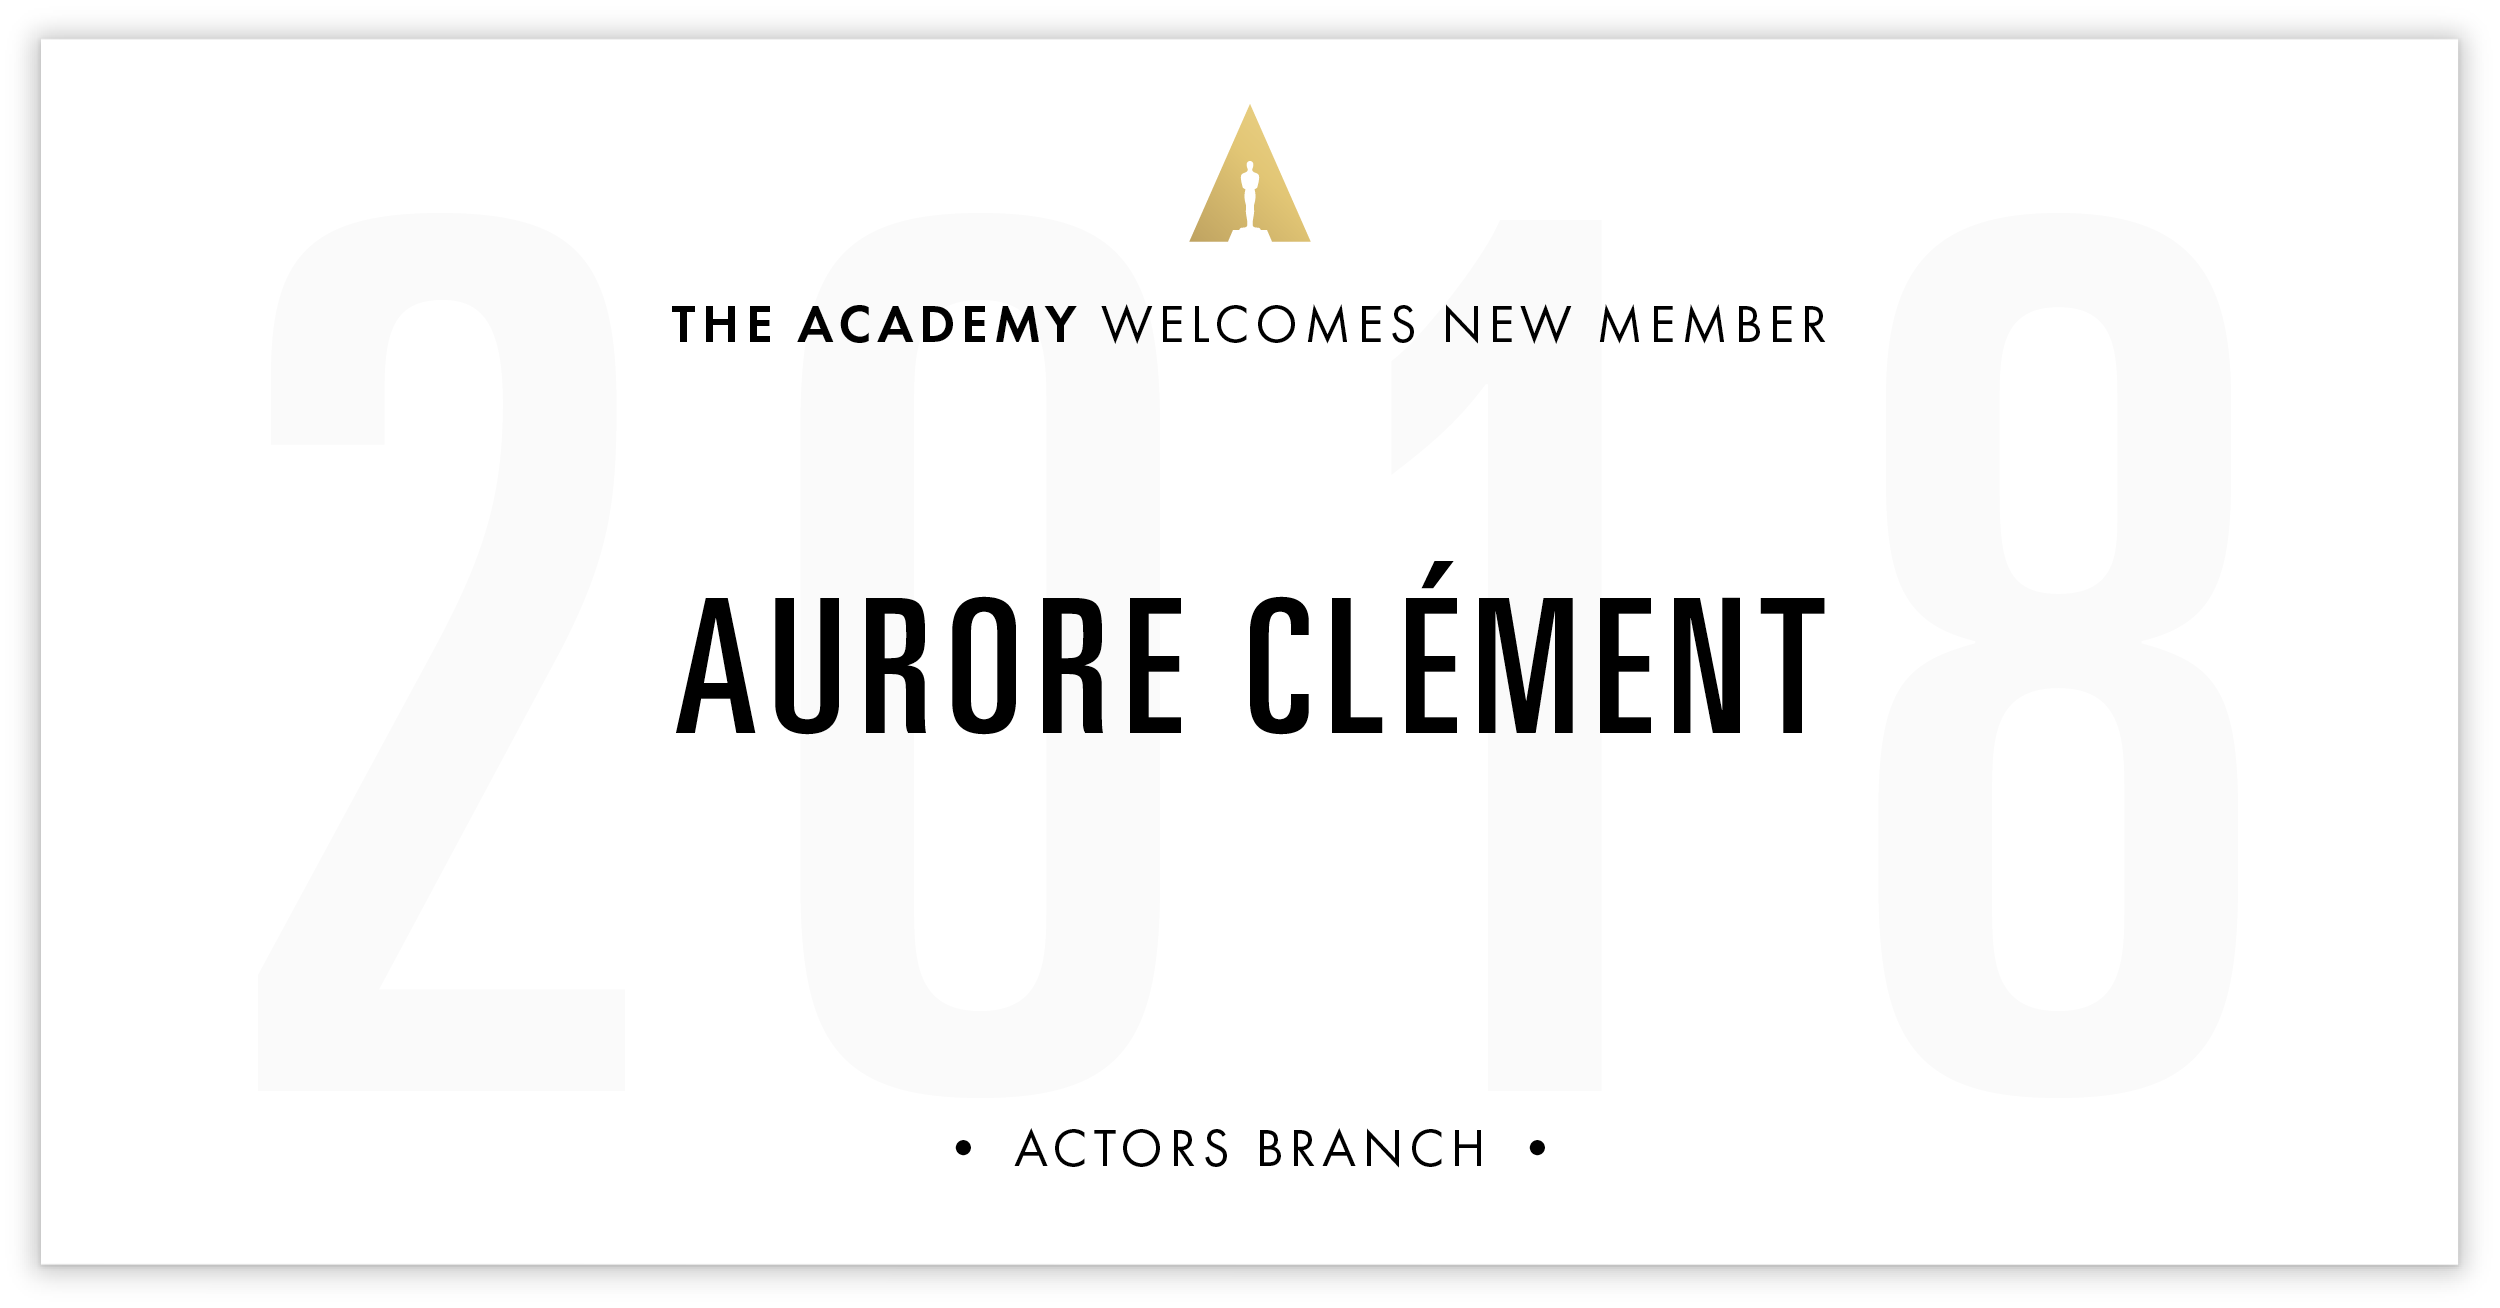 Aurore Clément is invited!